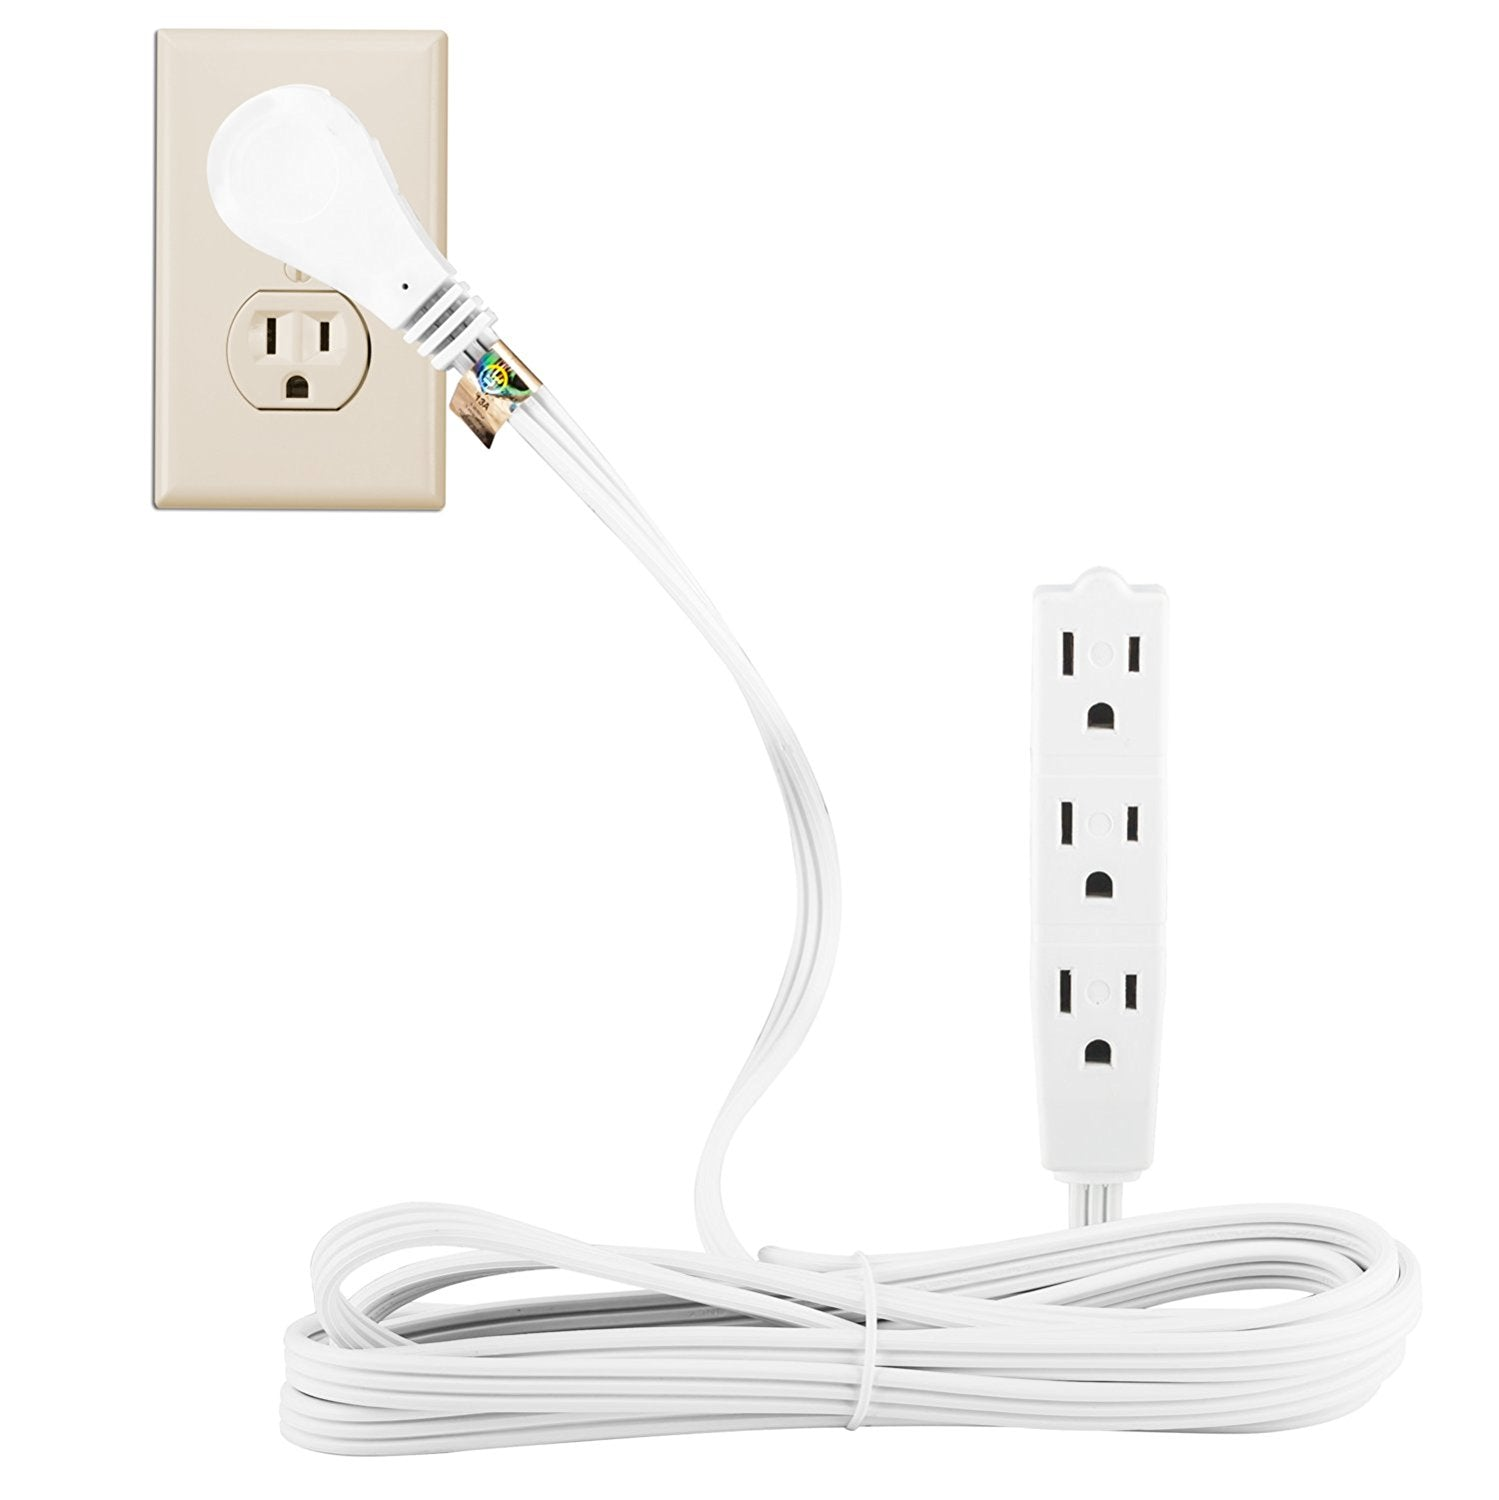 MAXIMM 6 Feet Flat Plug Extension Cord / Wire, 3 Outlet Electrical ...